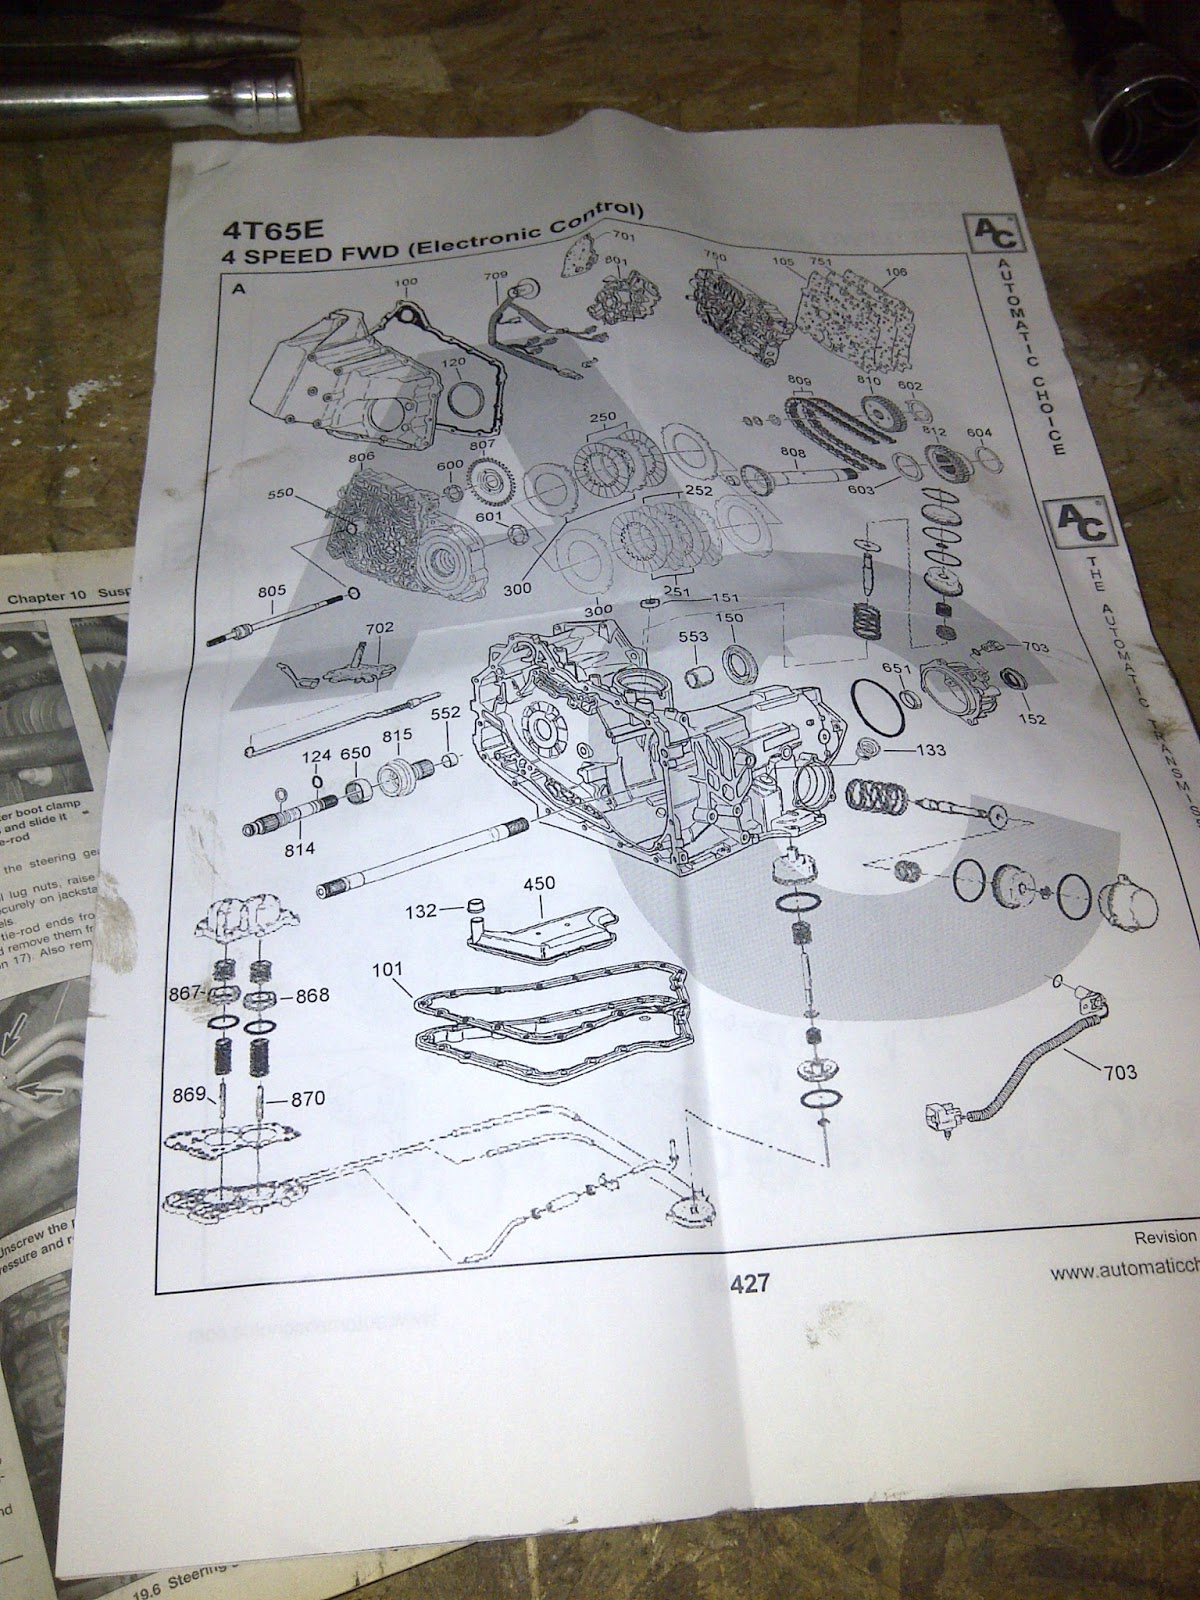 4t65e parts diagram wiring diagram gm automatic transmission diagrams likewise 4t65e transmission wiring [ 1200 x 1600 Pixel ]